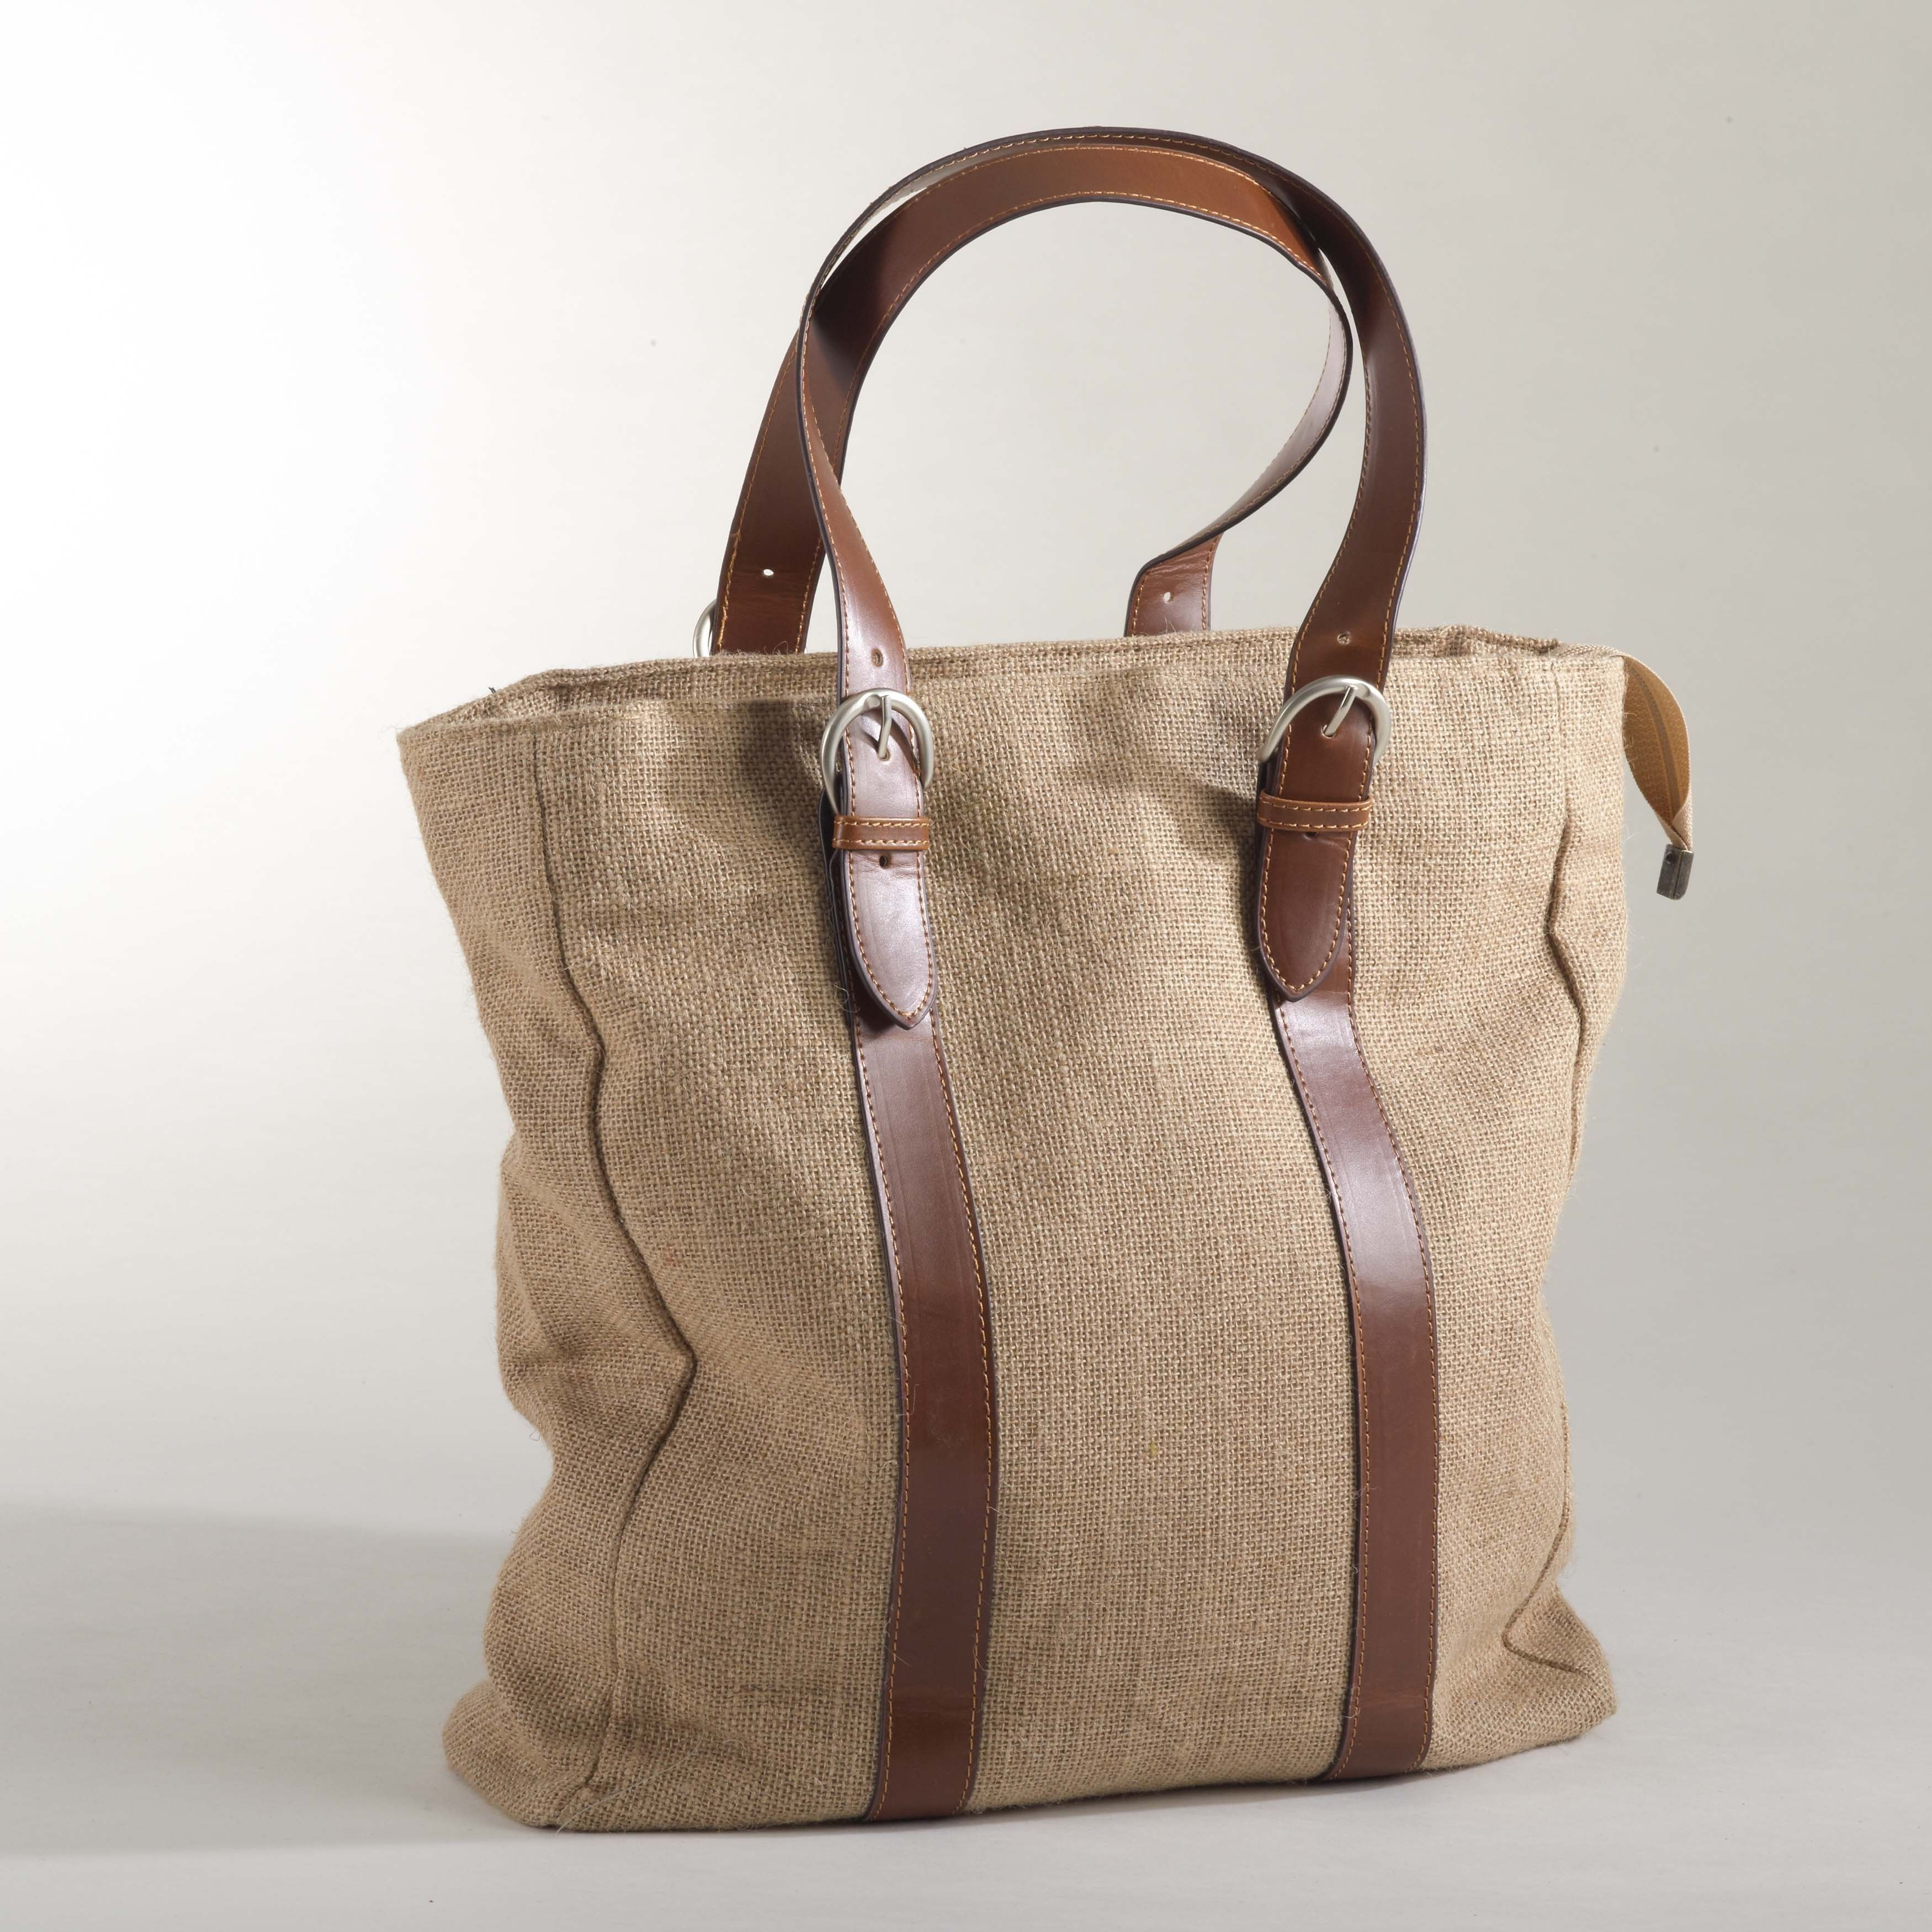 8192cd95c Dress up any outfit with this burlap design tote bag. Available in designer  natural.